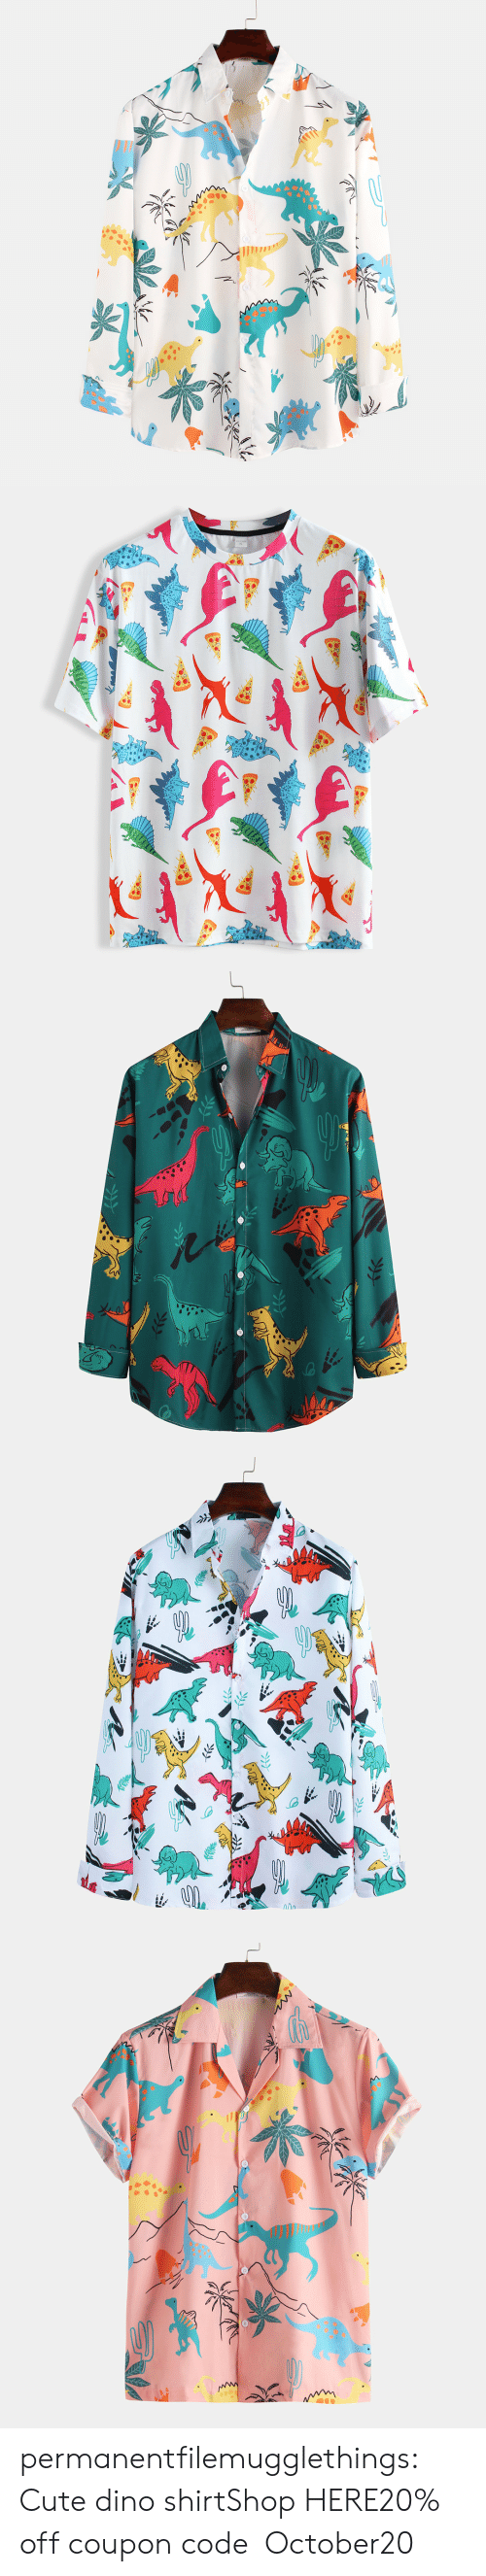 Cute, Tumblr, and Blog: permanentfilemugglethings:  Cute dino shirtShop HERE20% off coupon code:October20